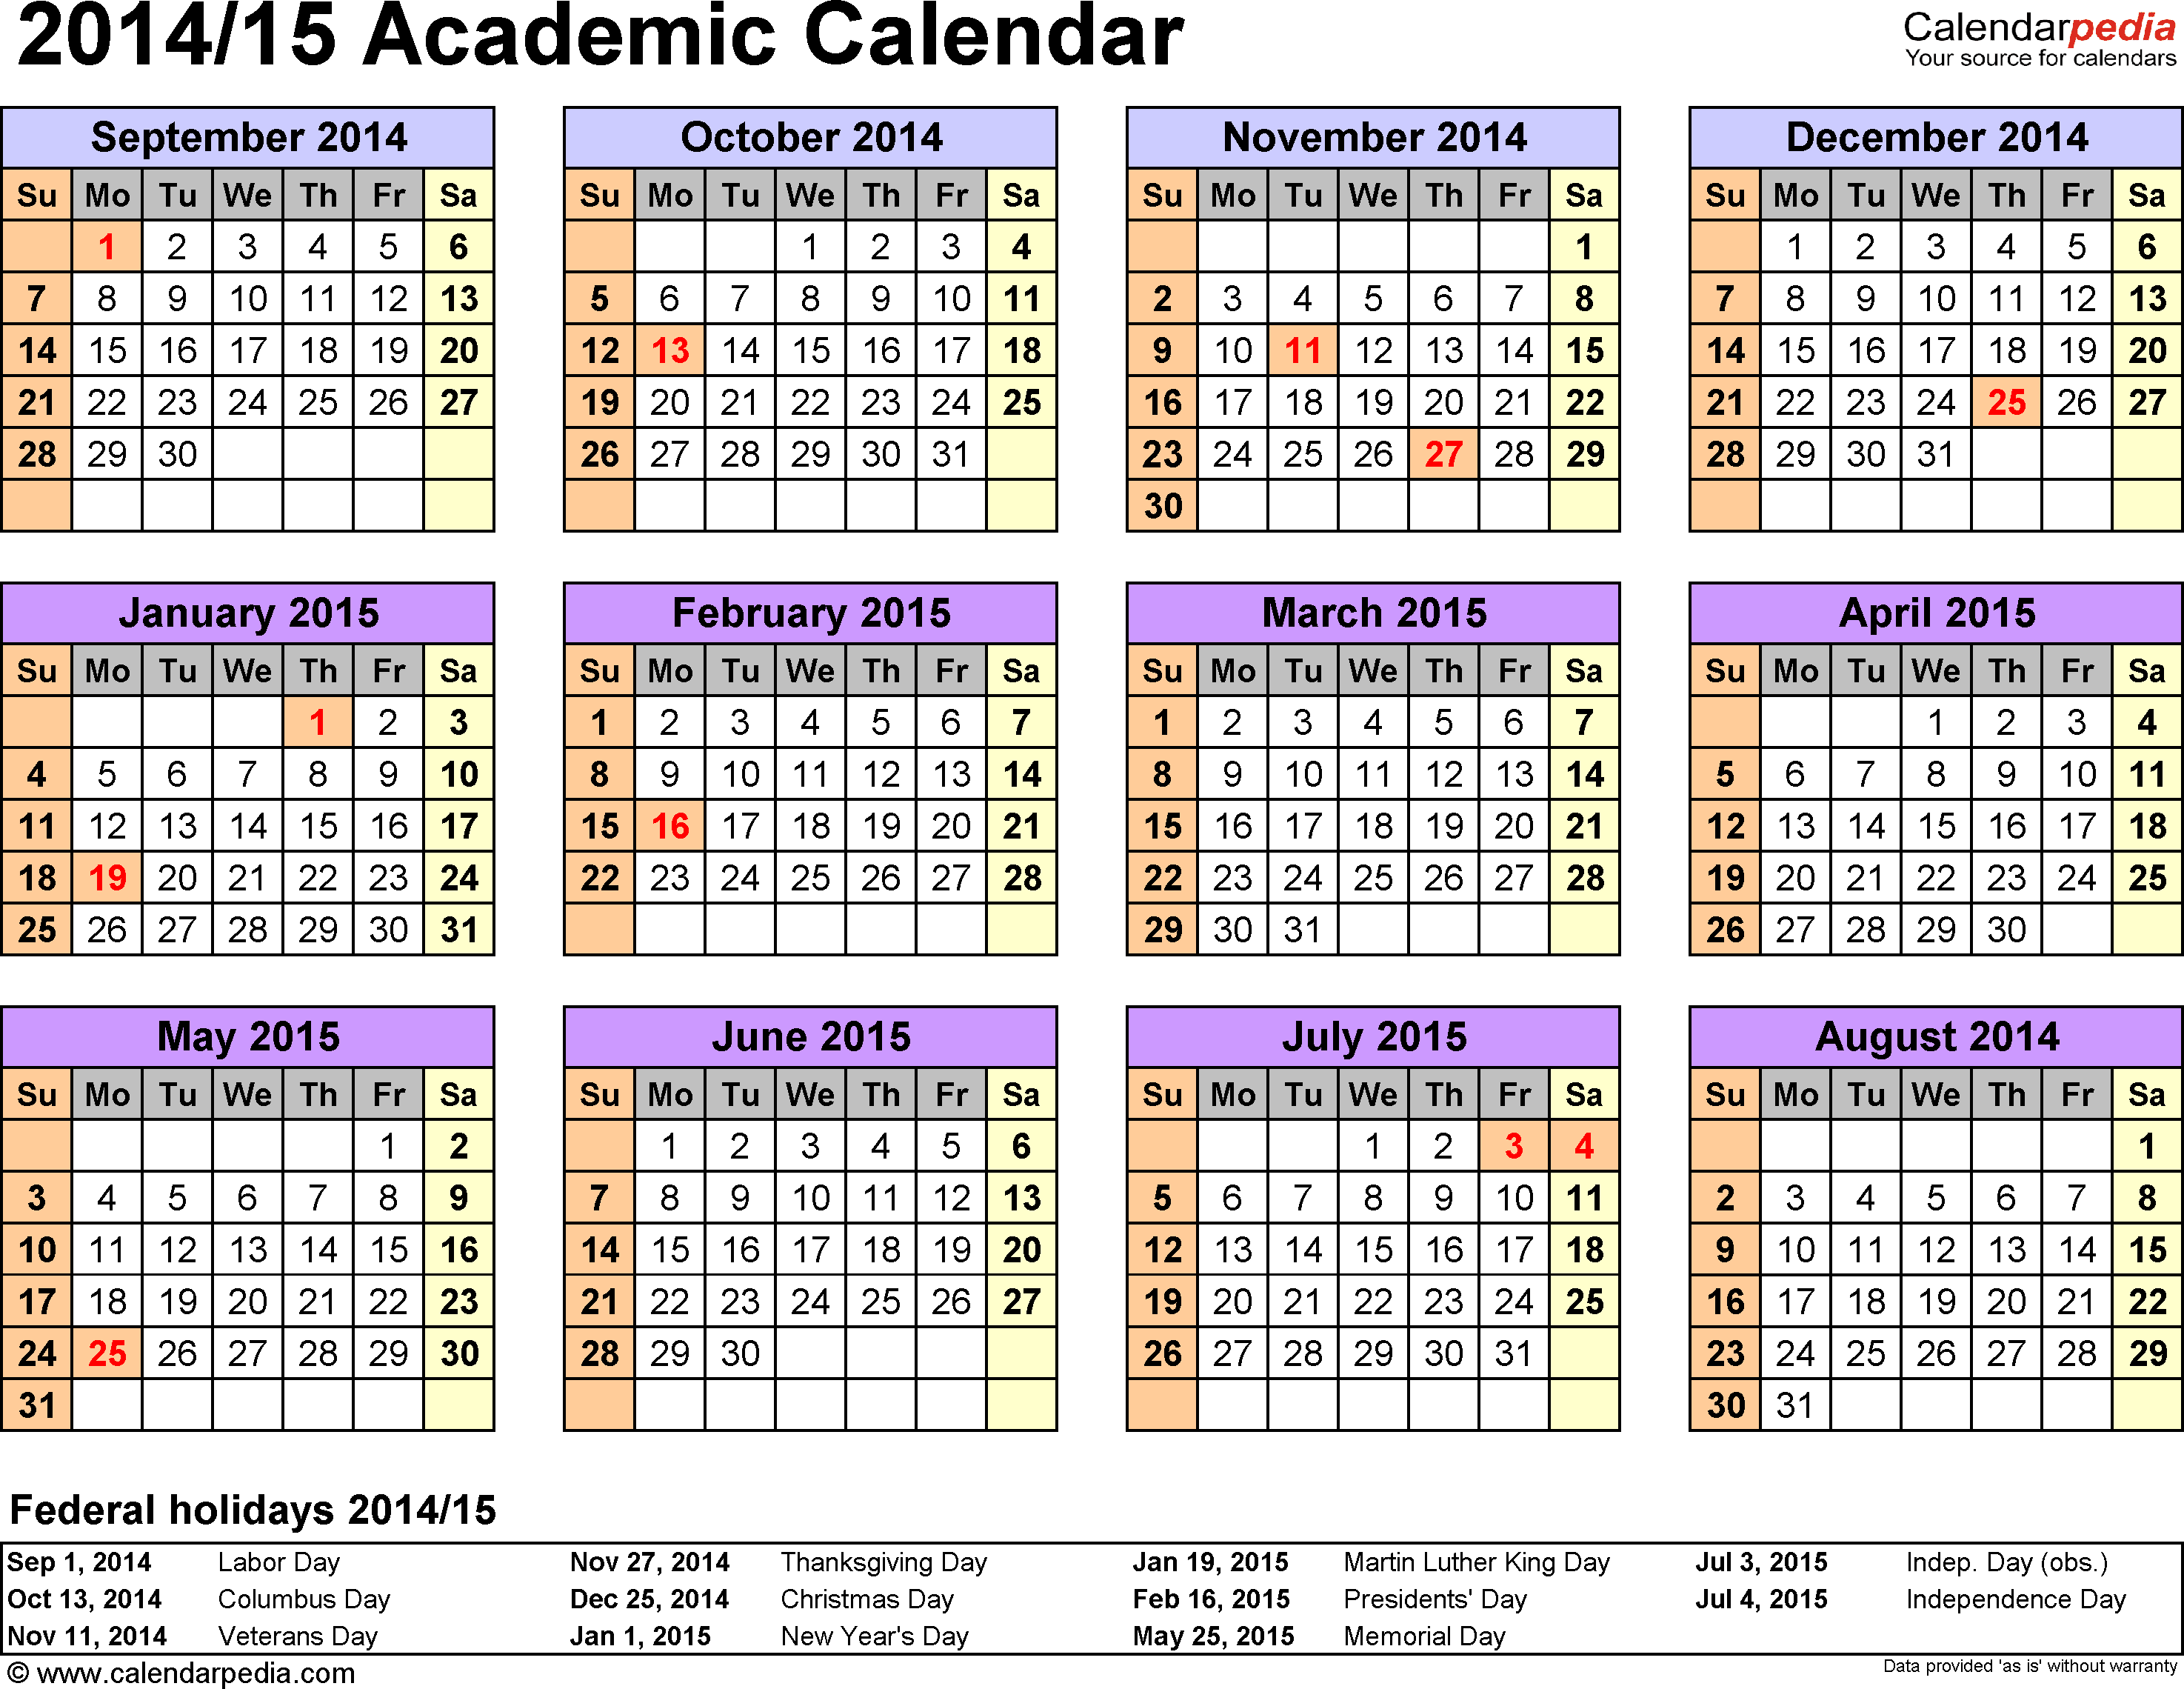 Download Template 3: Academic calendar 2014/15 in PDF format, landscape, 1 page, year at a glance